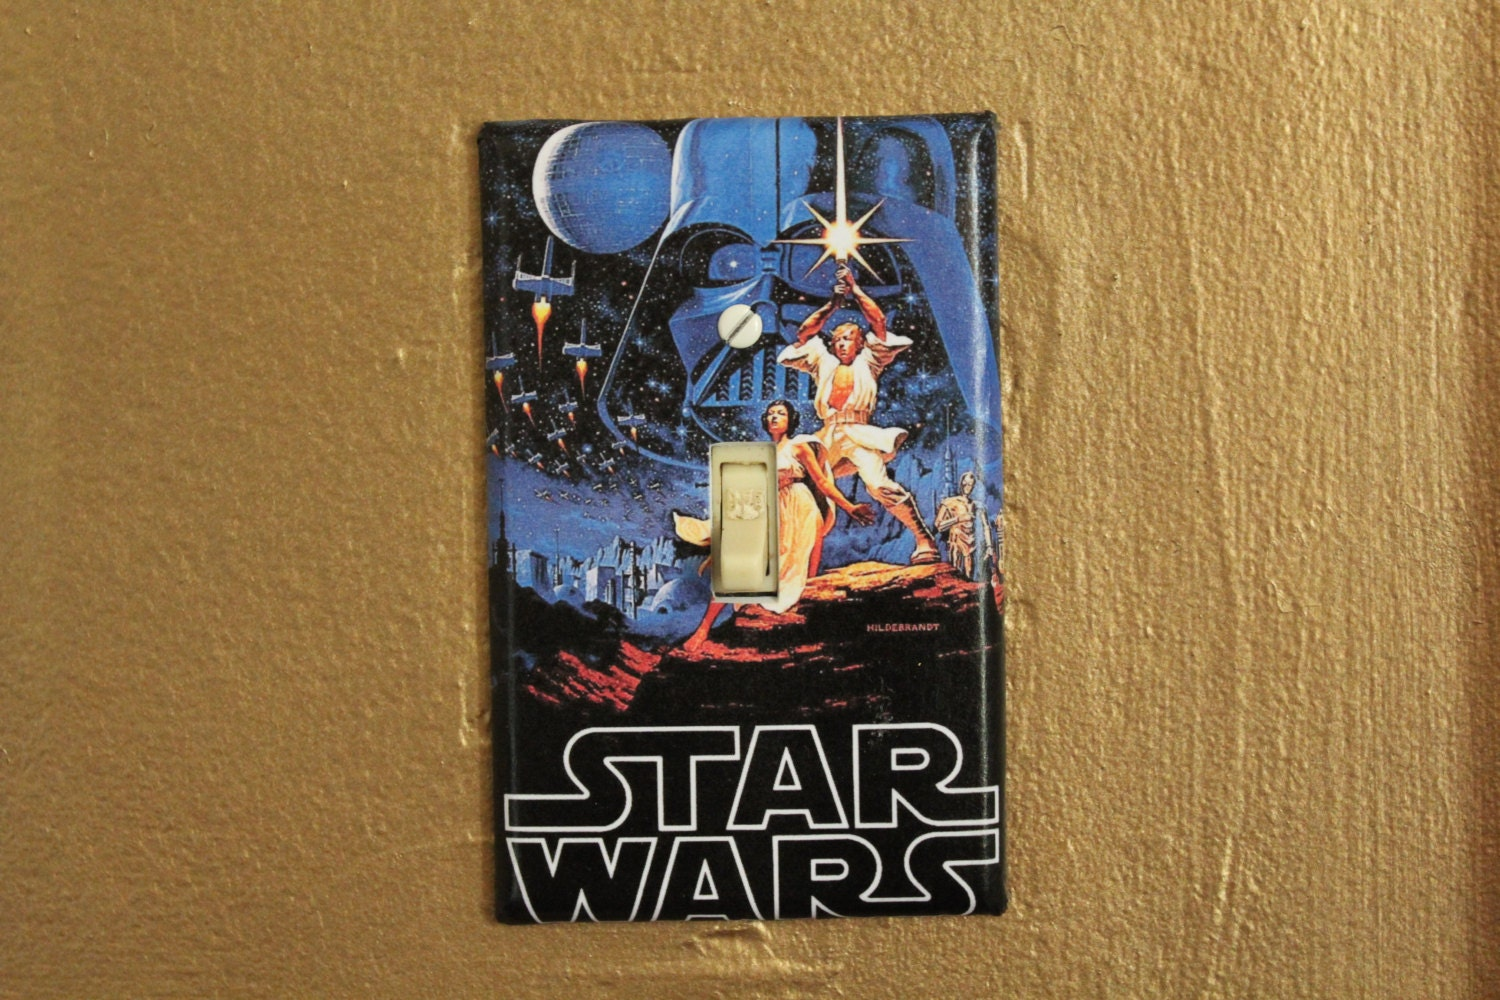 Star Wars Light Switch Cover Plate By Btpart On Etsy